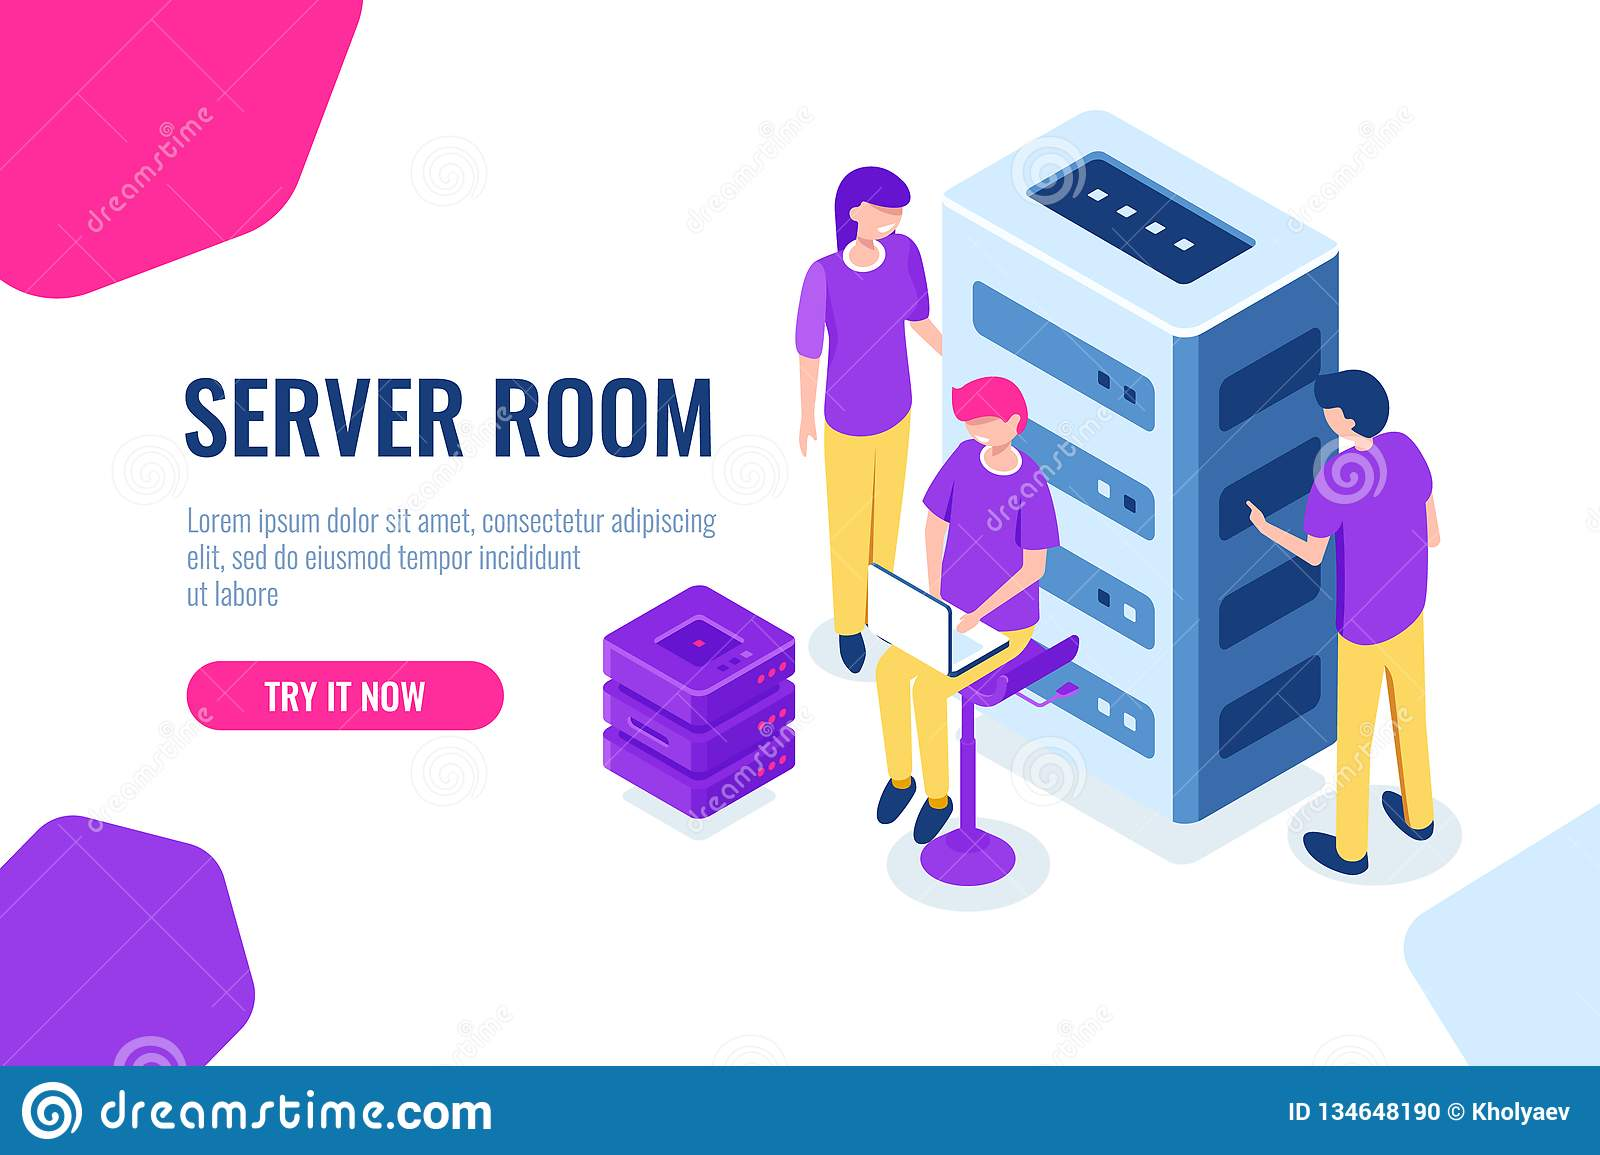 Server room isometric, datacenter and database, working on a common project, teamwork and collaboration, maintain